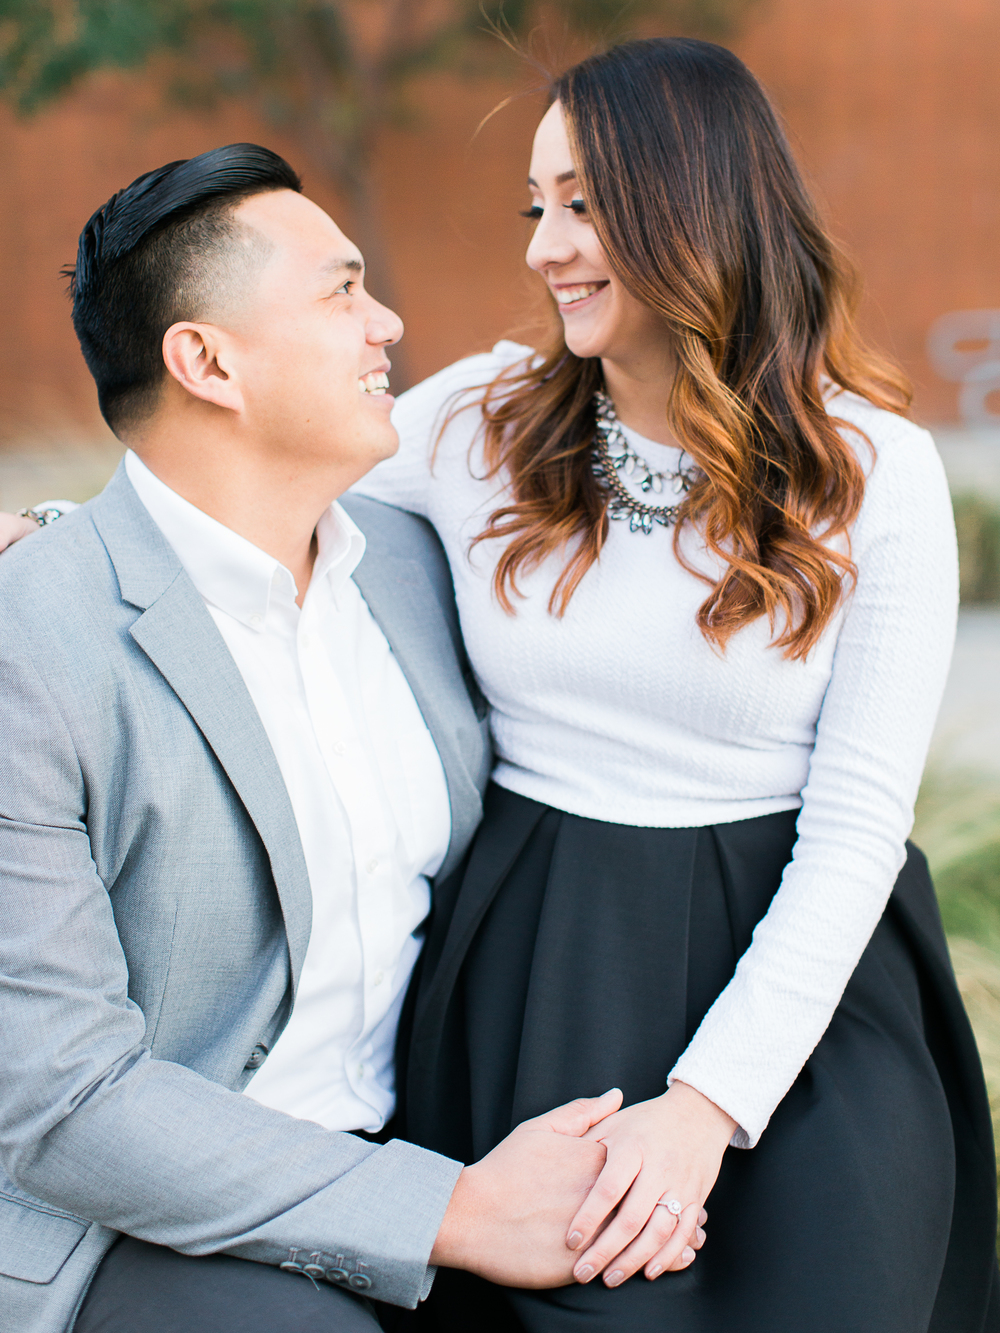 Klint and Yessy Engagement _ Brandon J Ferlin Photography-85.jpg